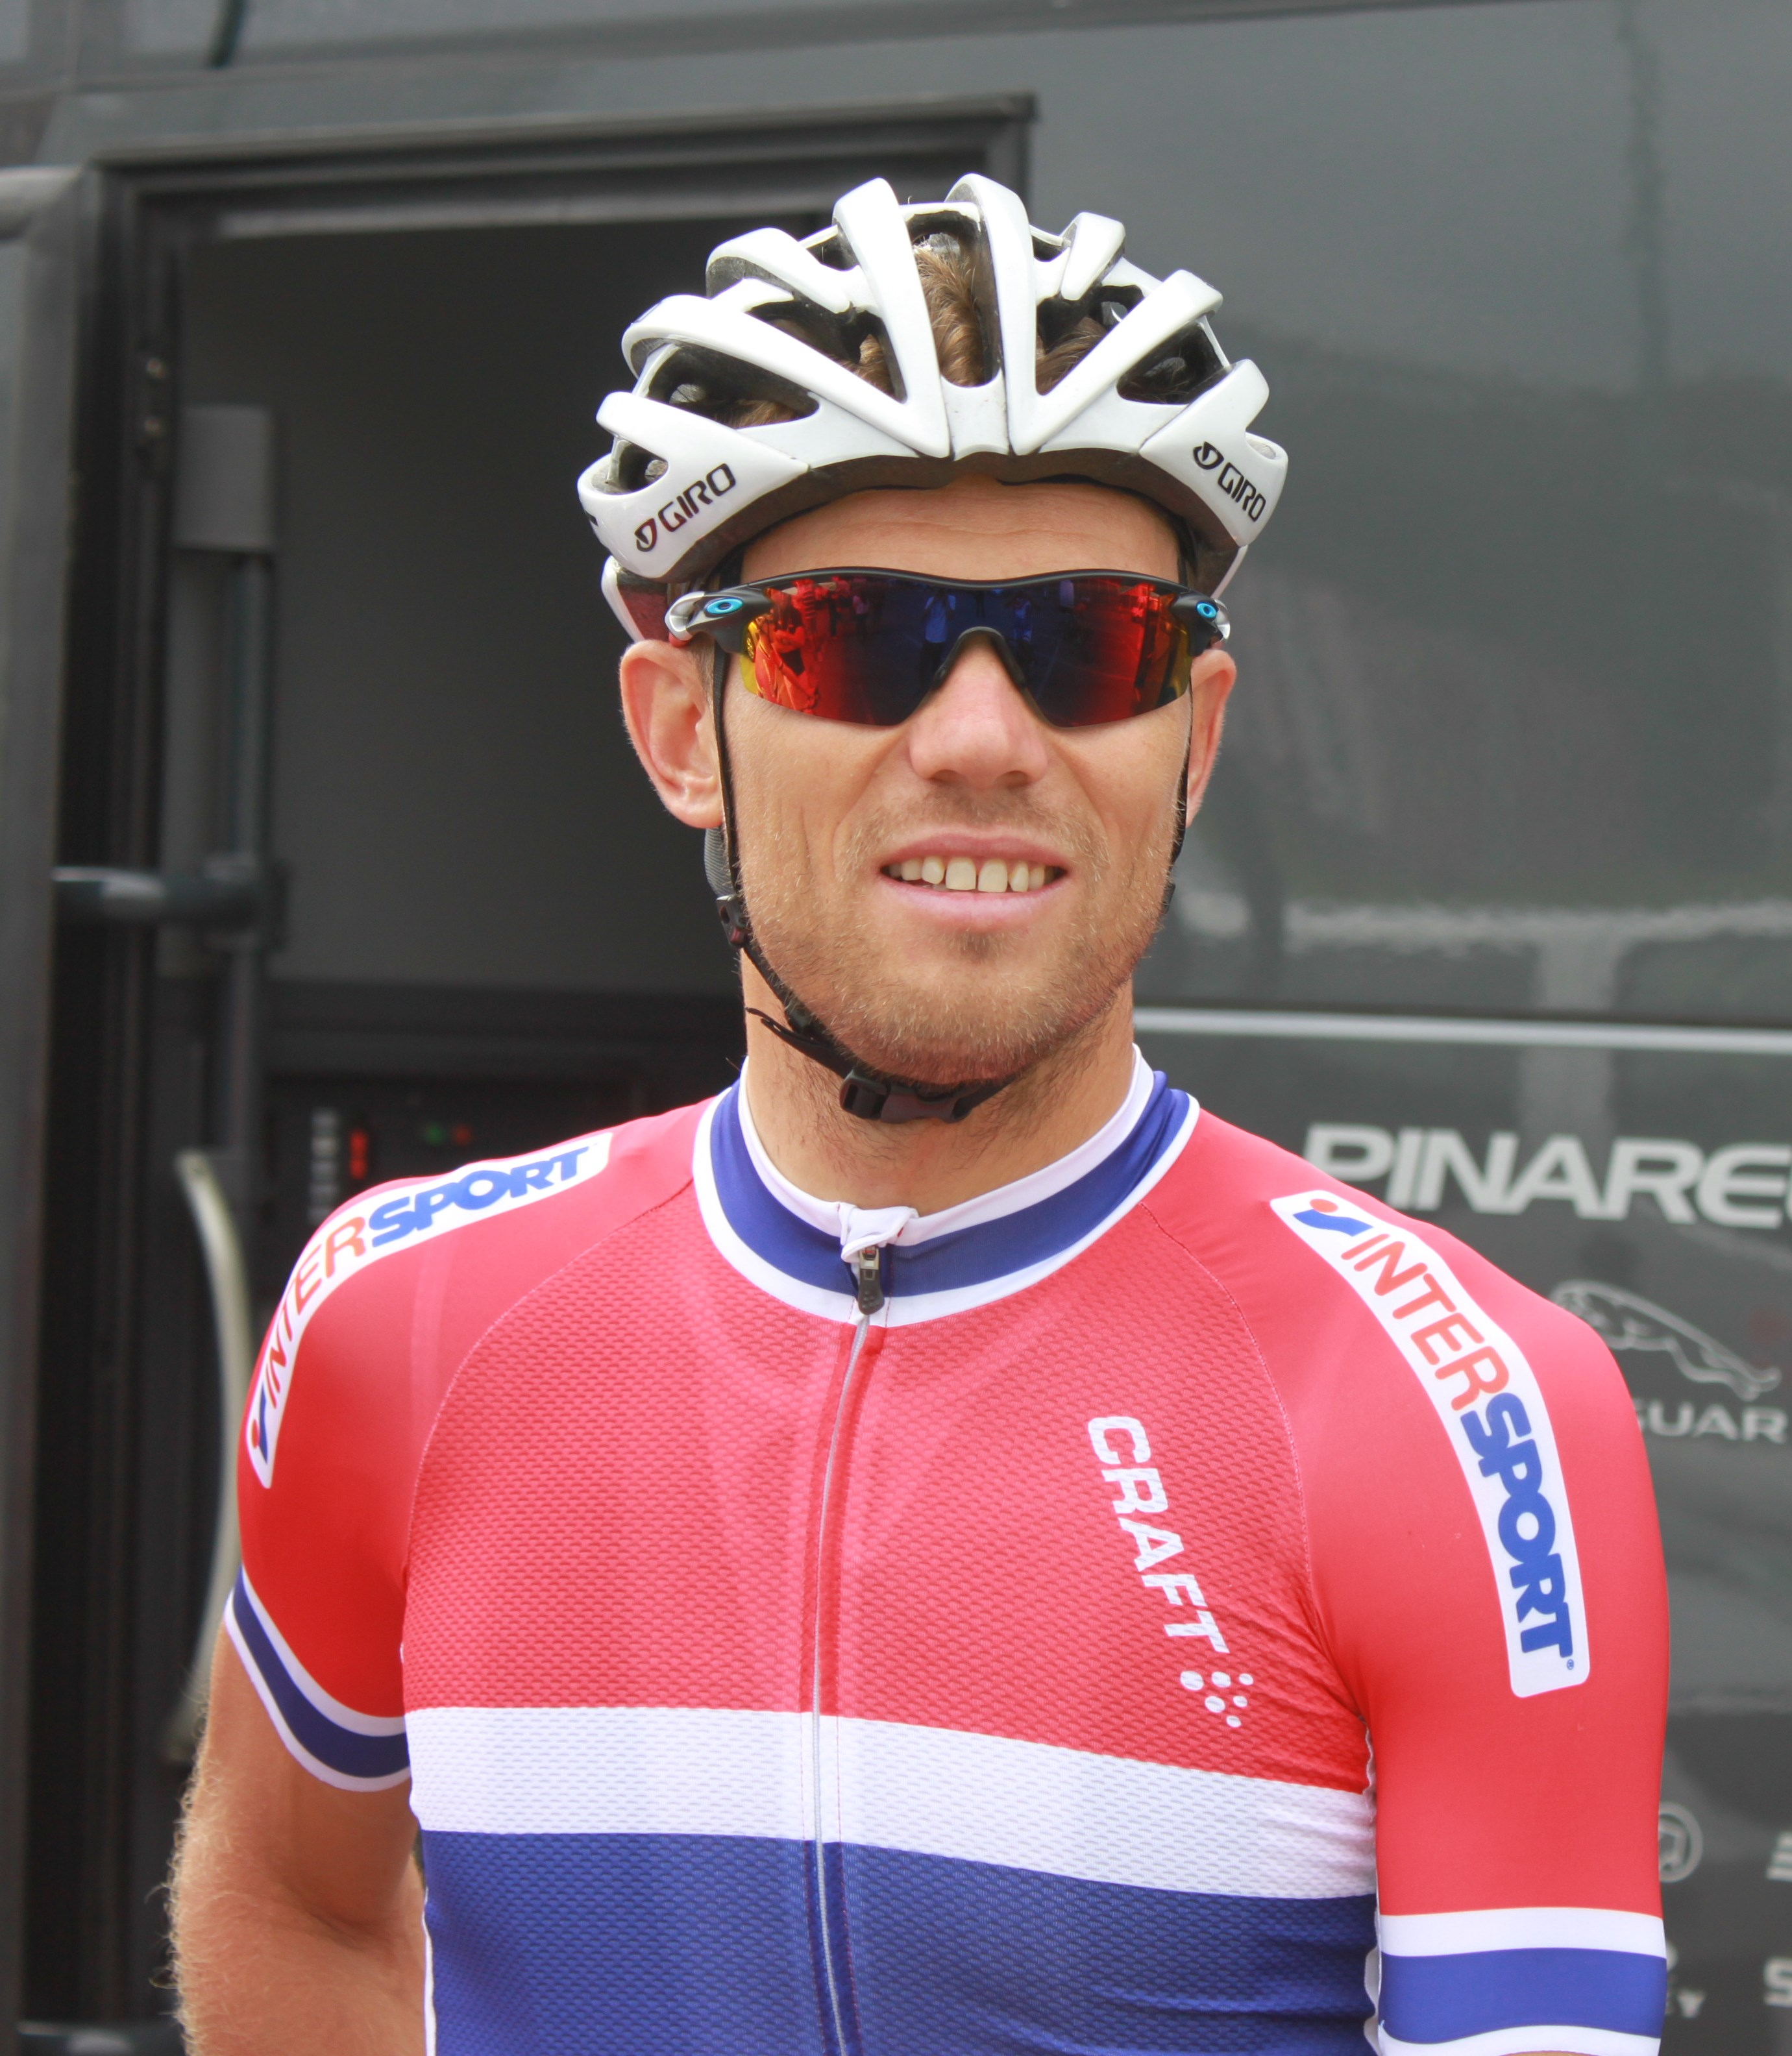 Description Thor Hushovd 2013 UCI Road World Championships 002.jpg